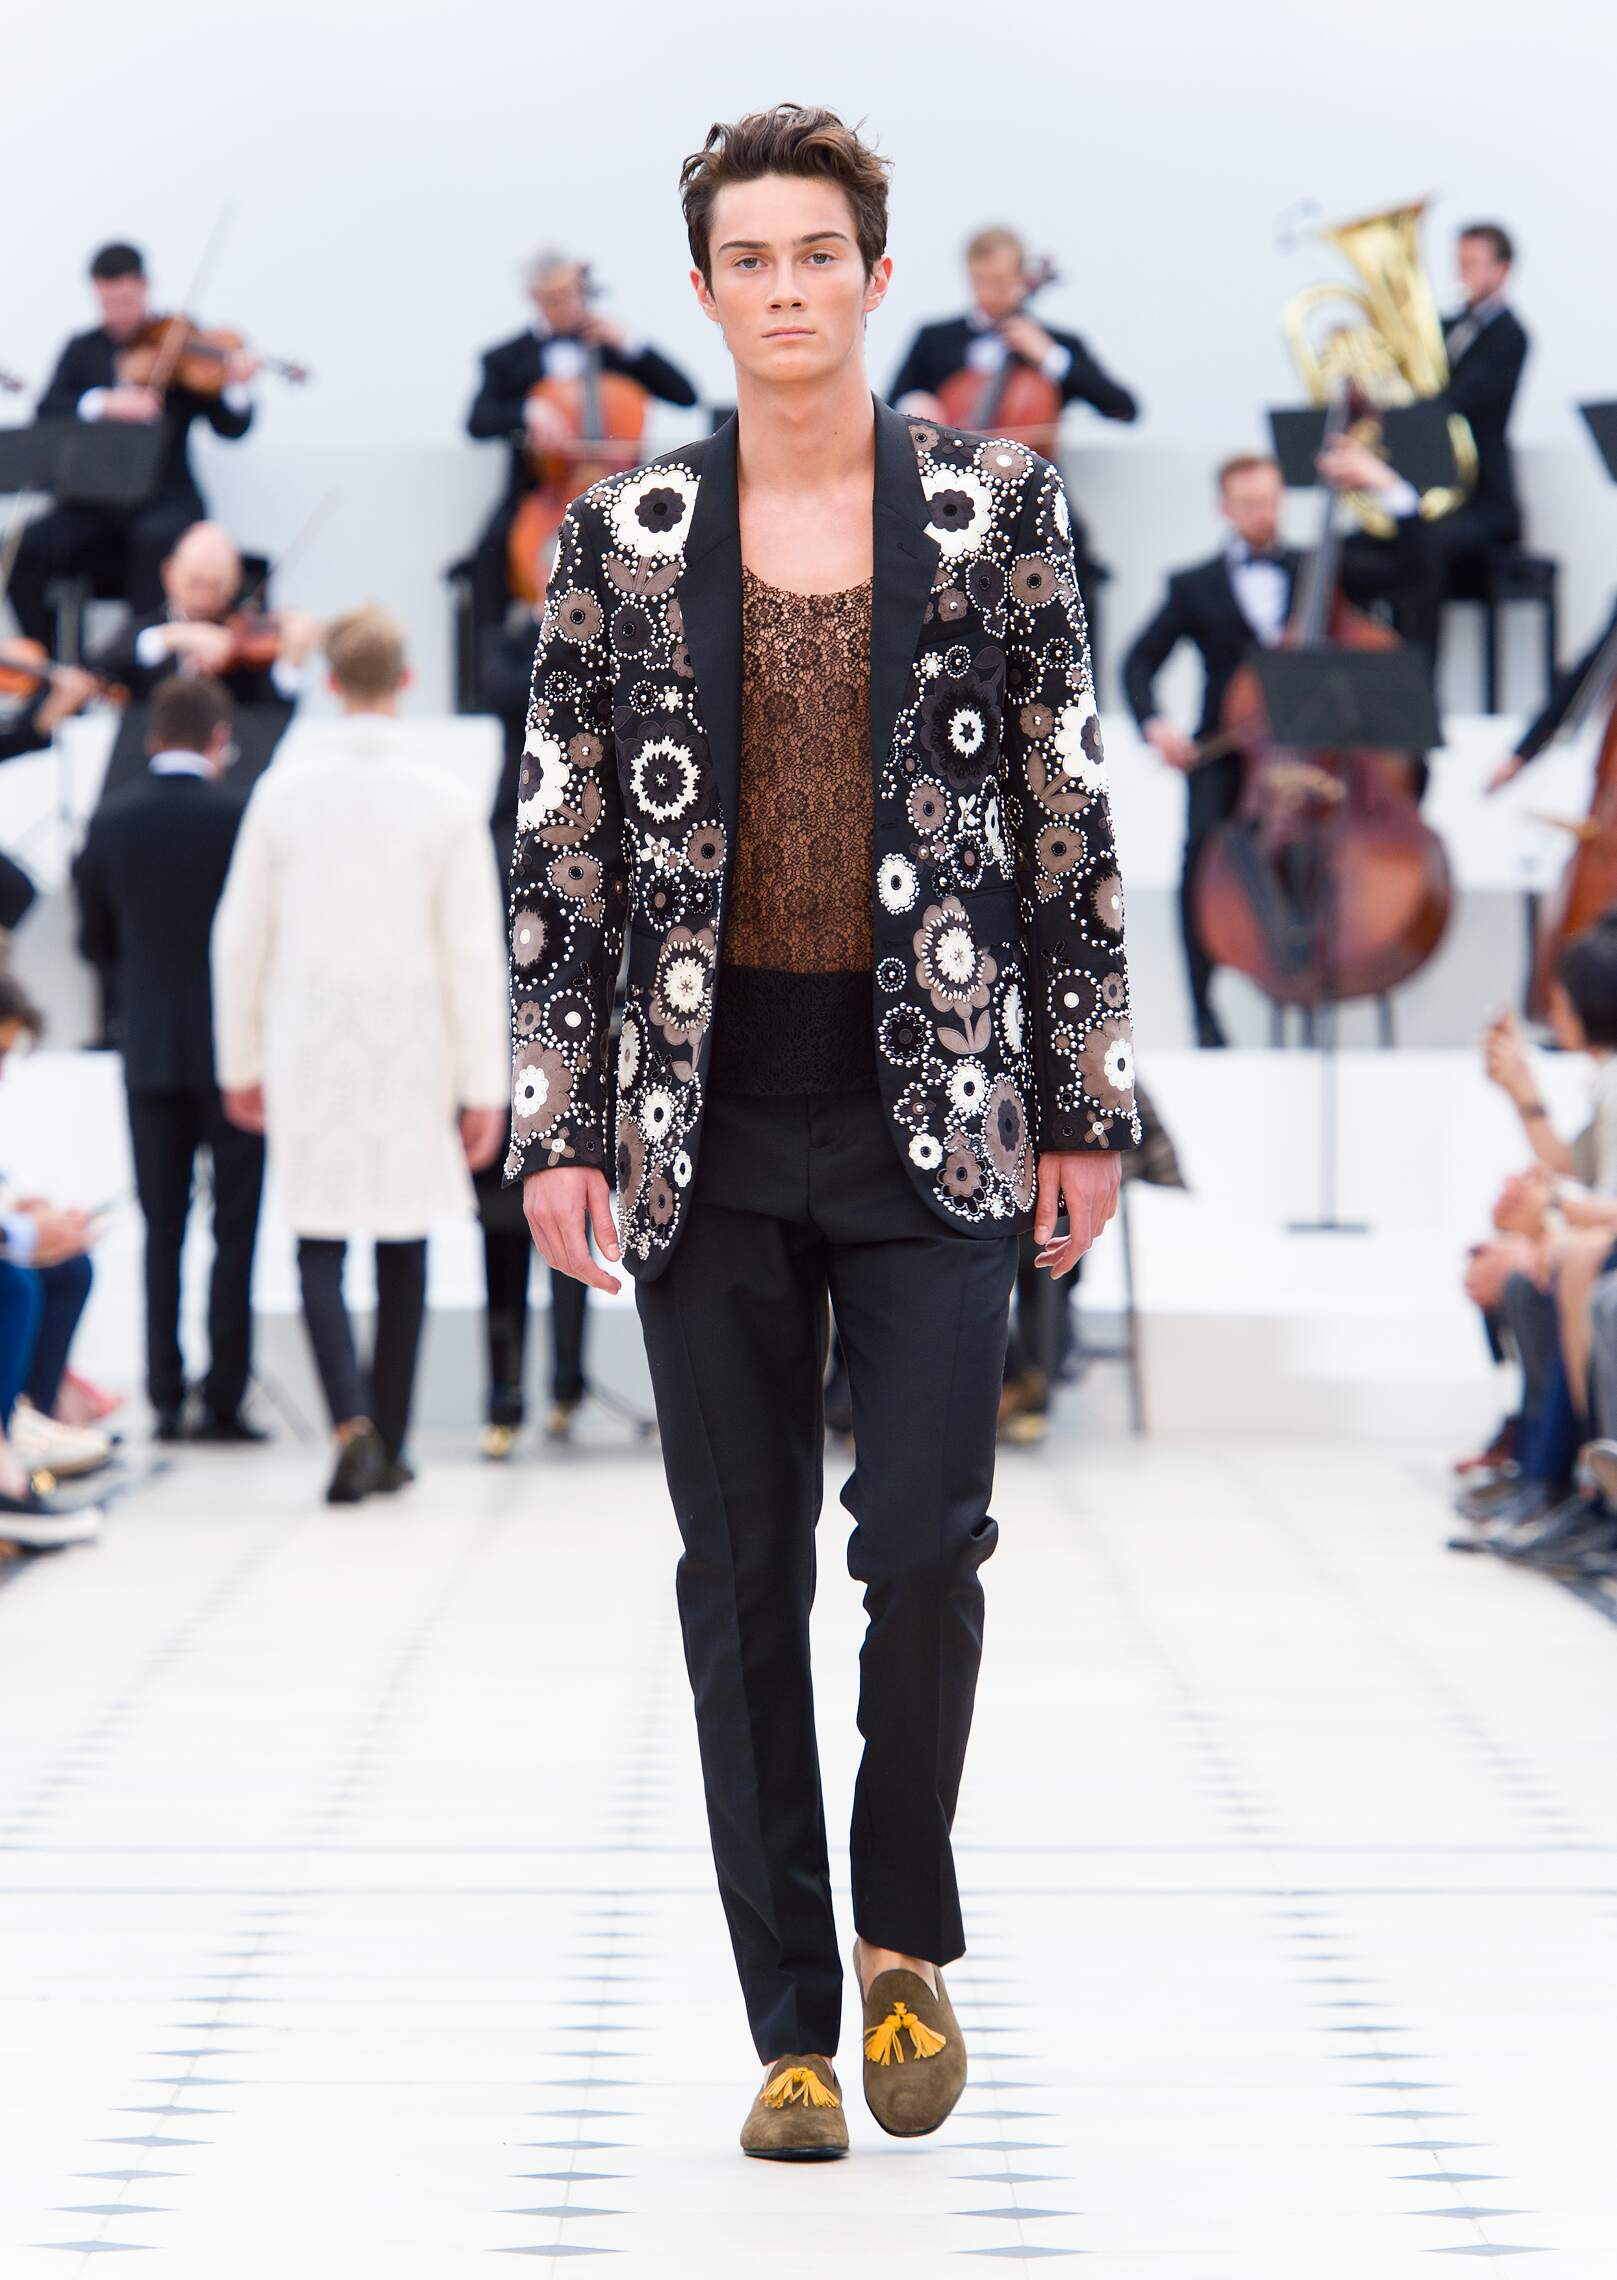 2016 Burberry Prorsum Spring Summer Menswear Collection London Fashion Week  Fashion Show 89e691eedc1f2